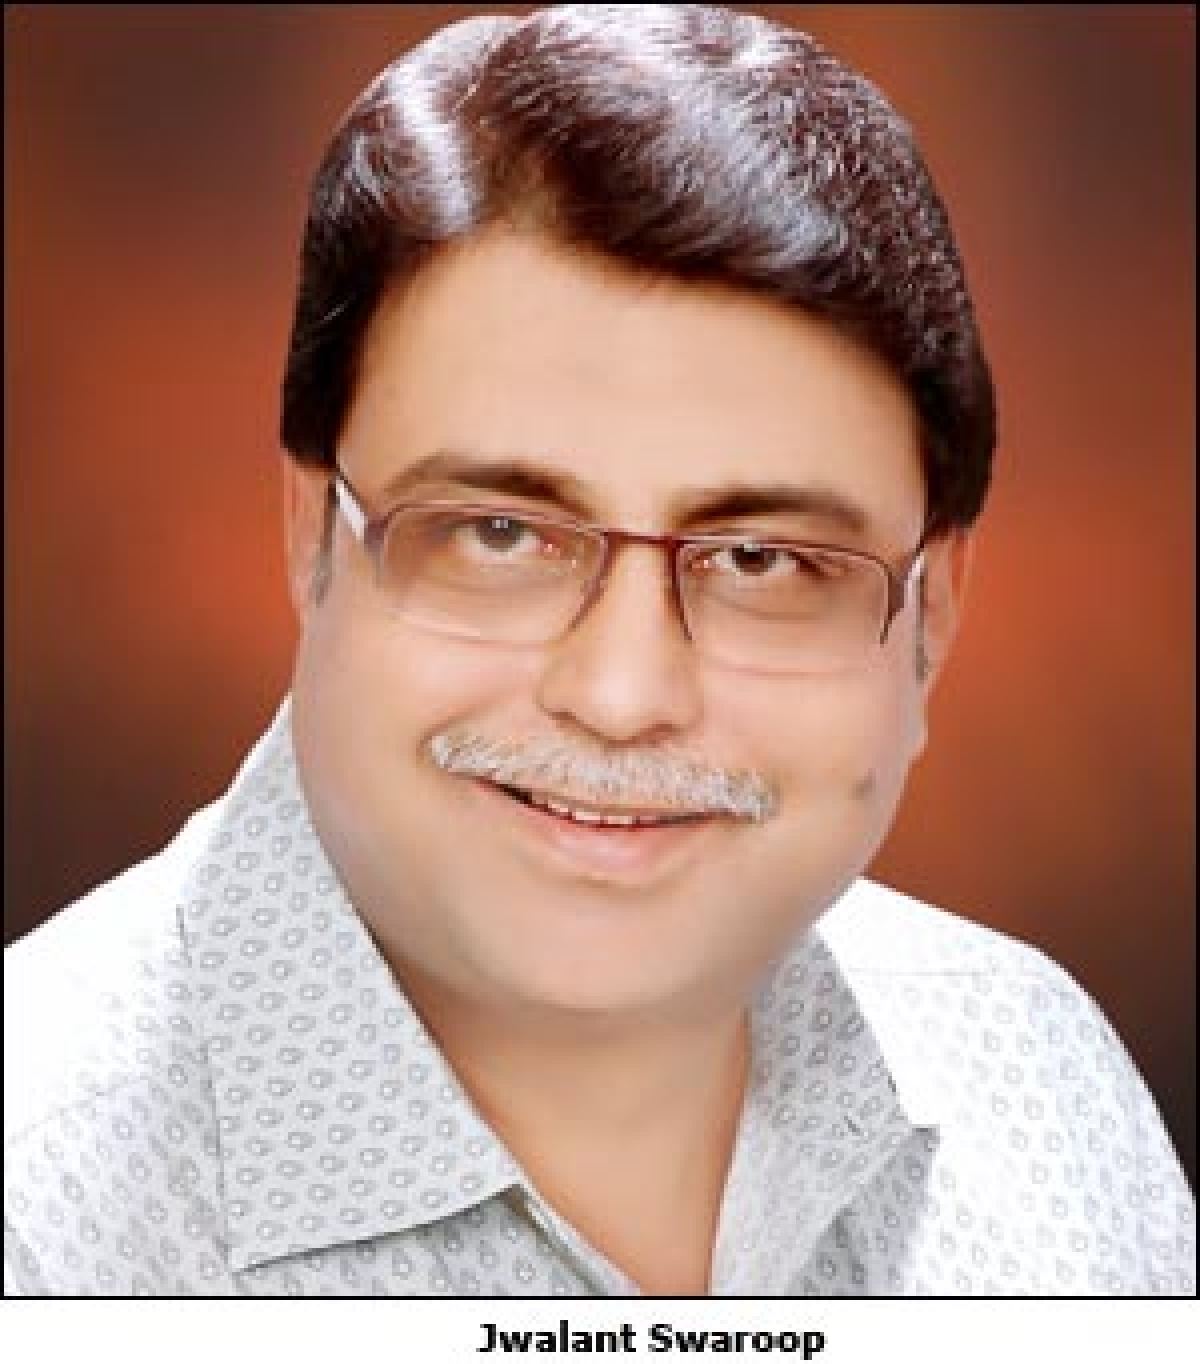 Jwalant Swaroop to move on from Sakal Media